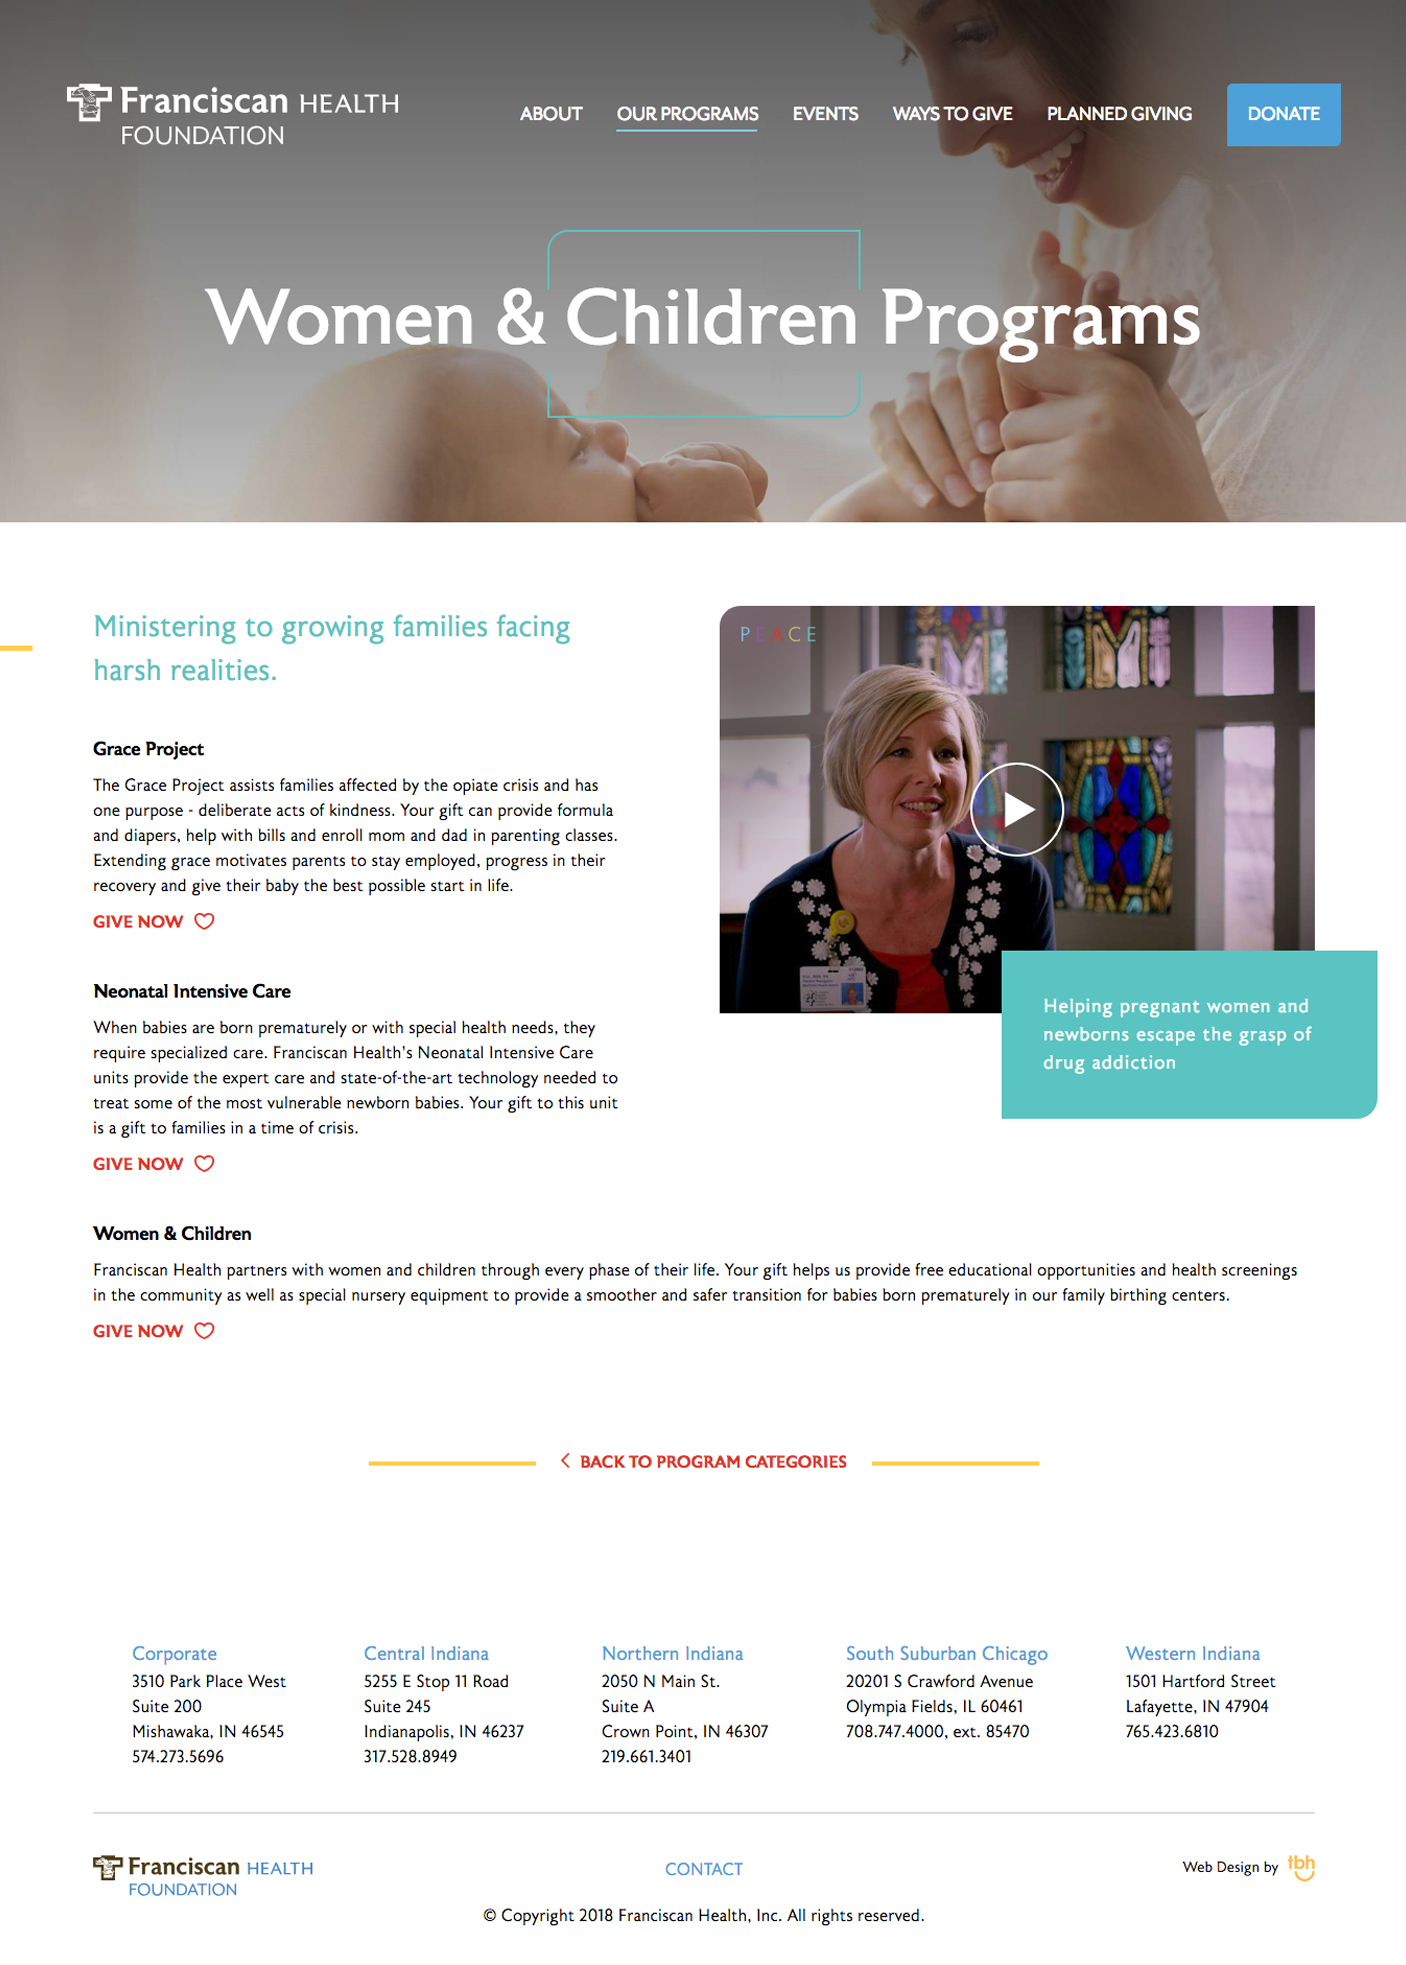 Franciscan Health Foundation Program Detail web page